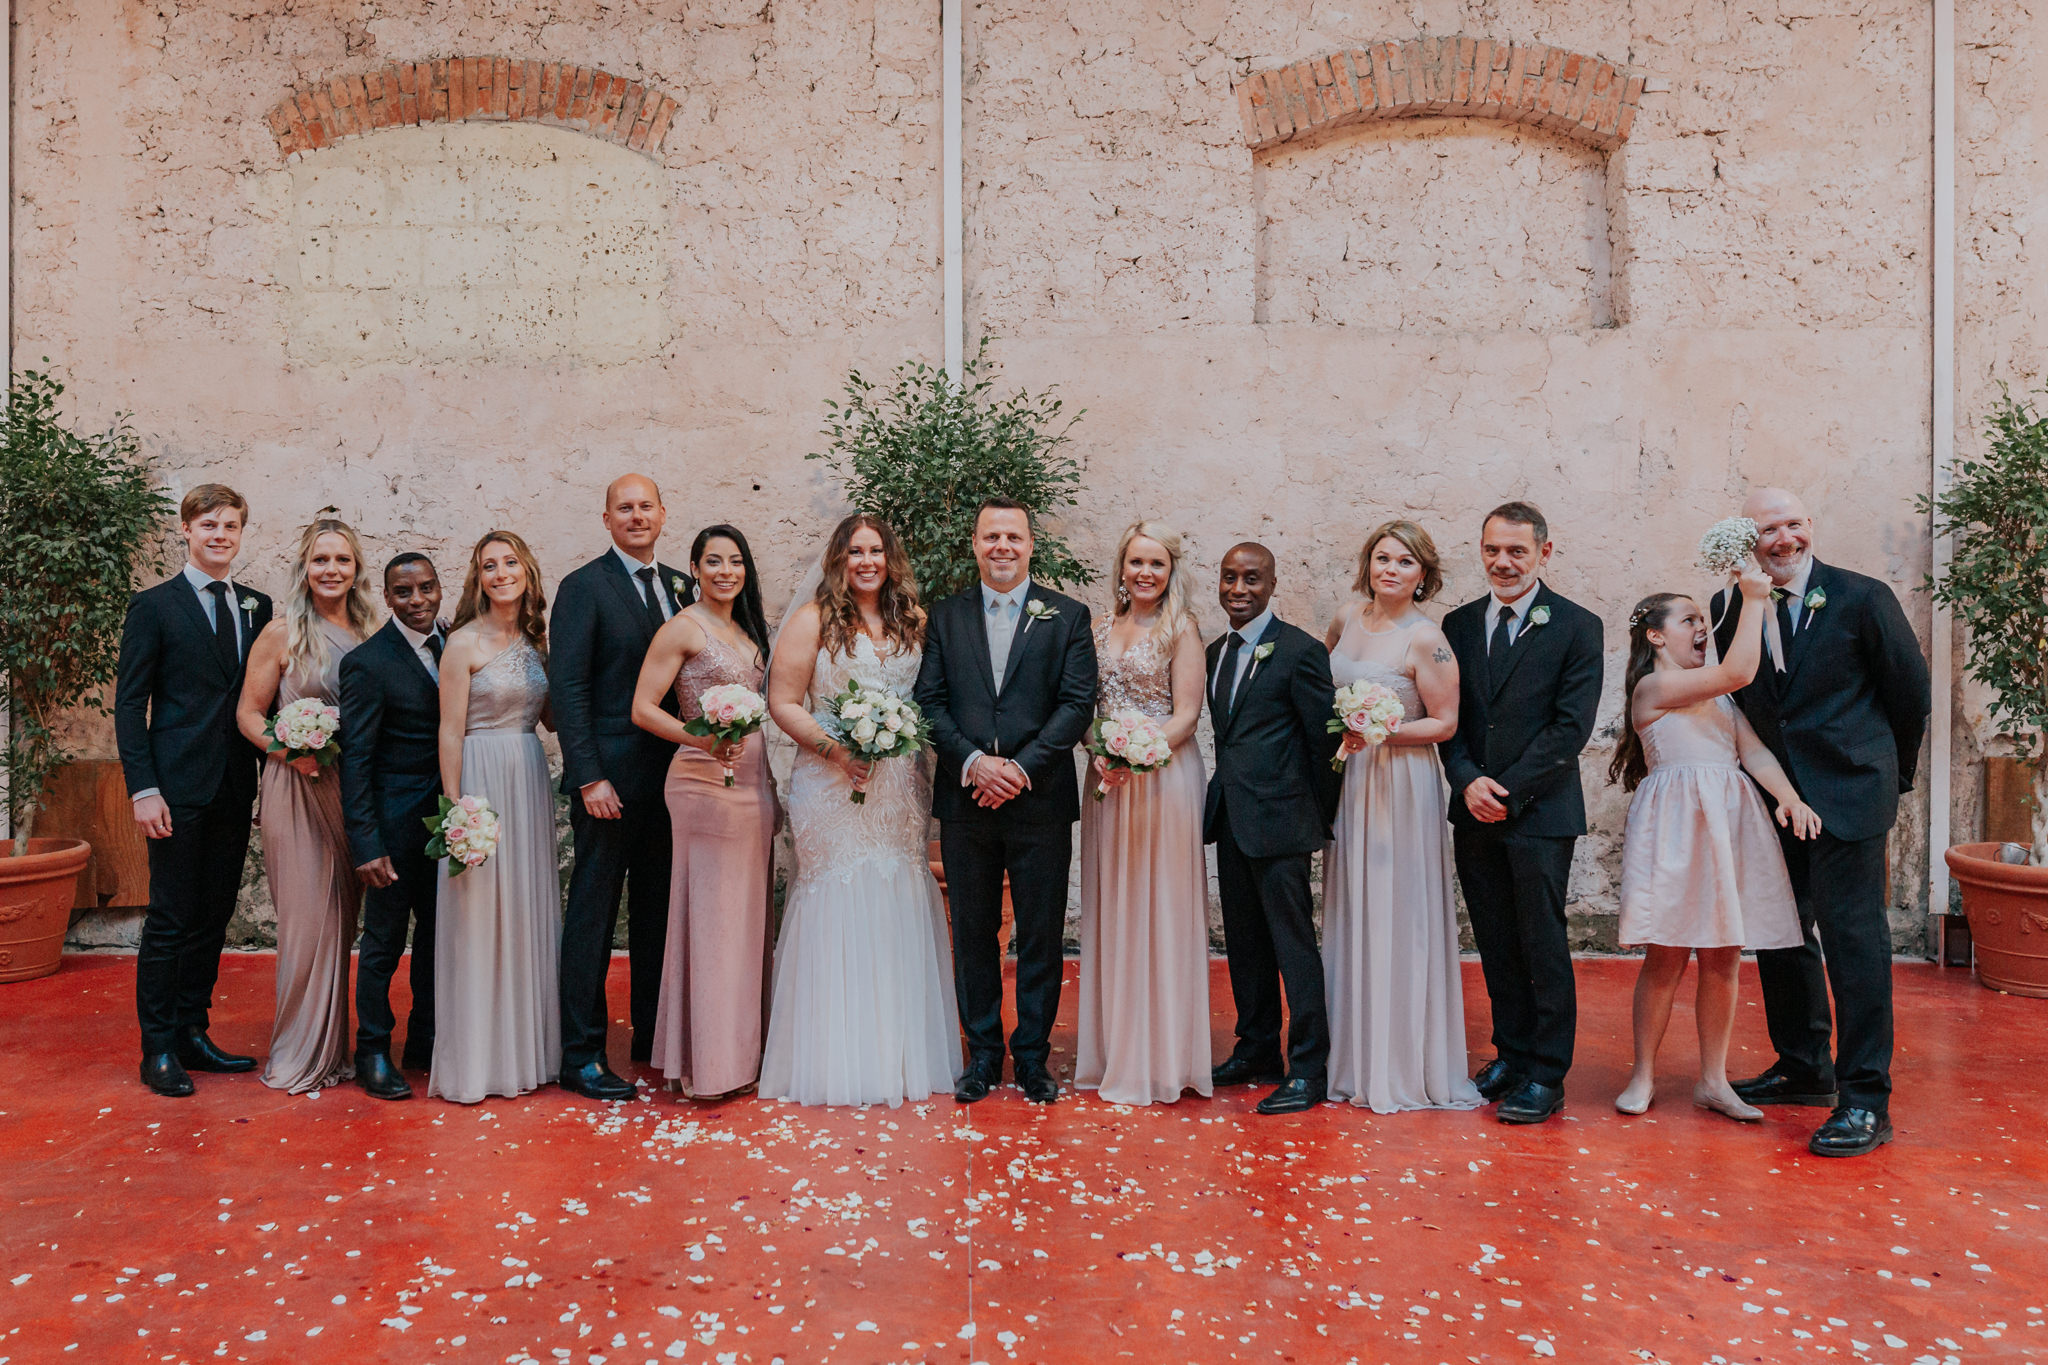 Elkie&Doug_Wedding_Italy_KristieCarrickPhotography_LOW-531.jpg